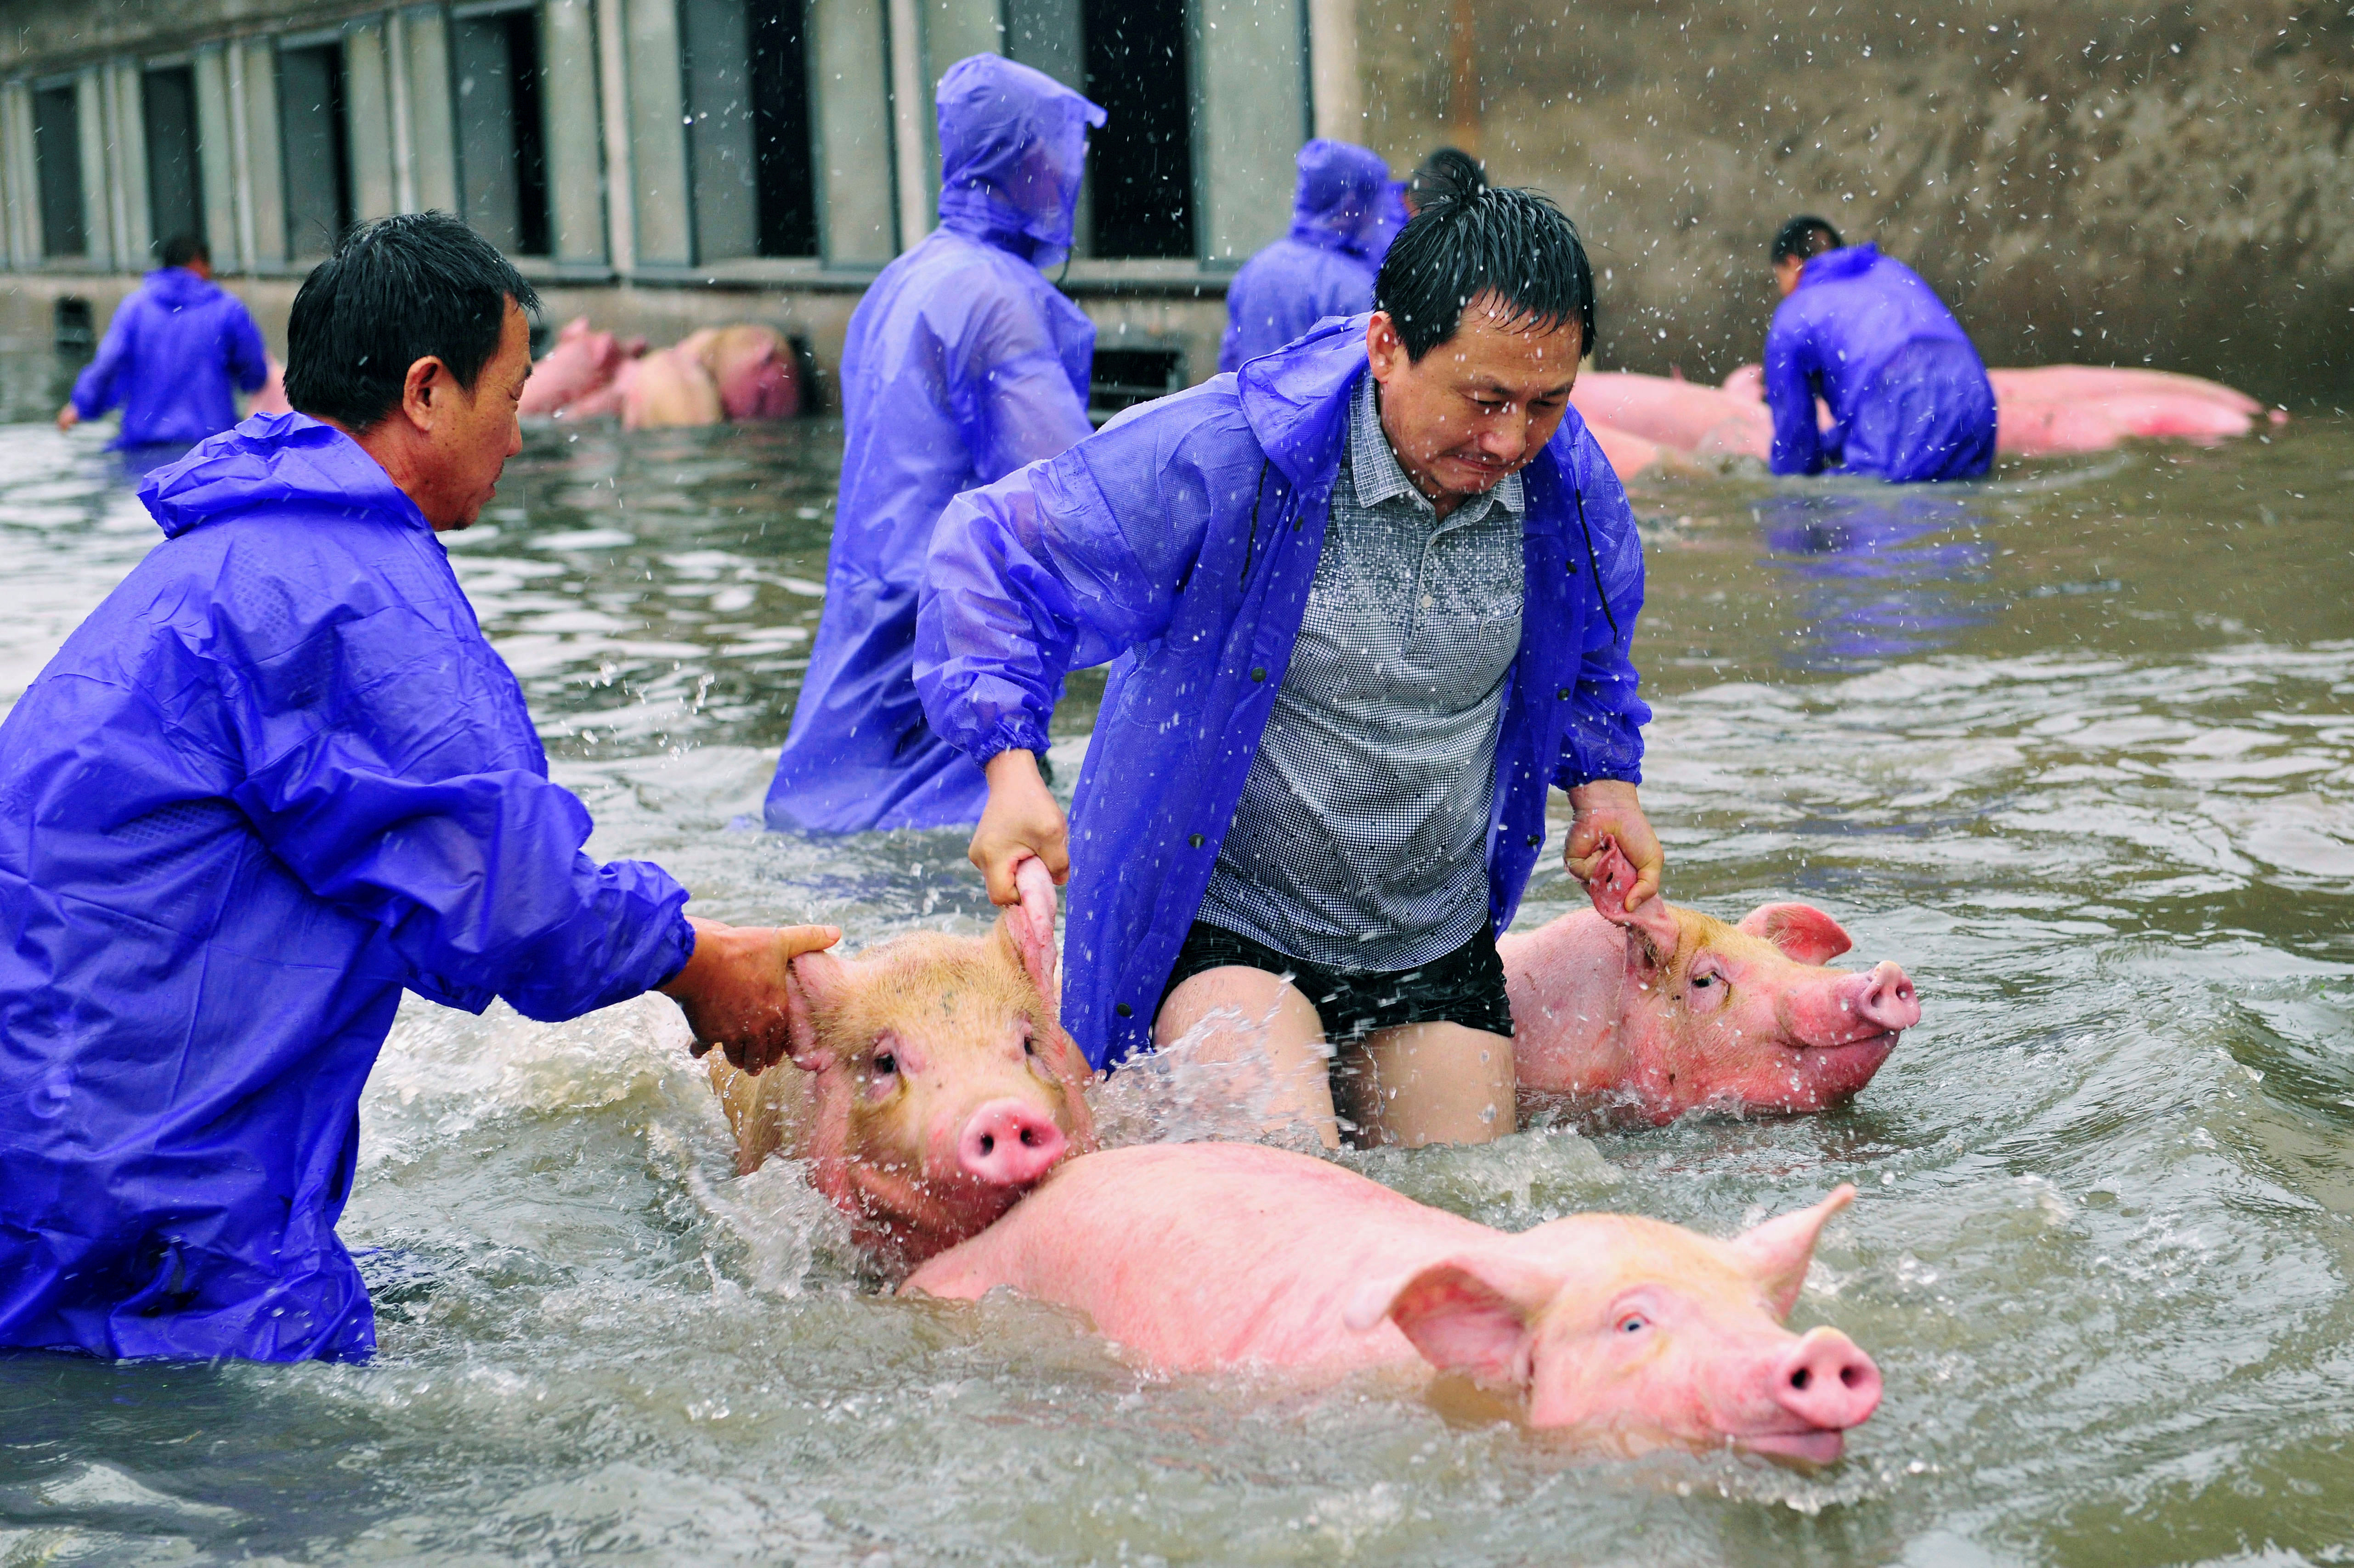 Employees save pigs from a flooded farm in Lu'an, Anhui Province, China, on July 5, 2016.